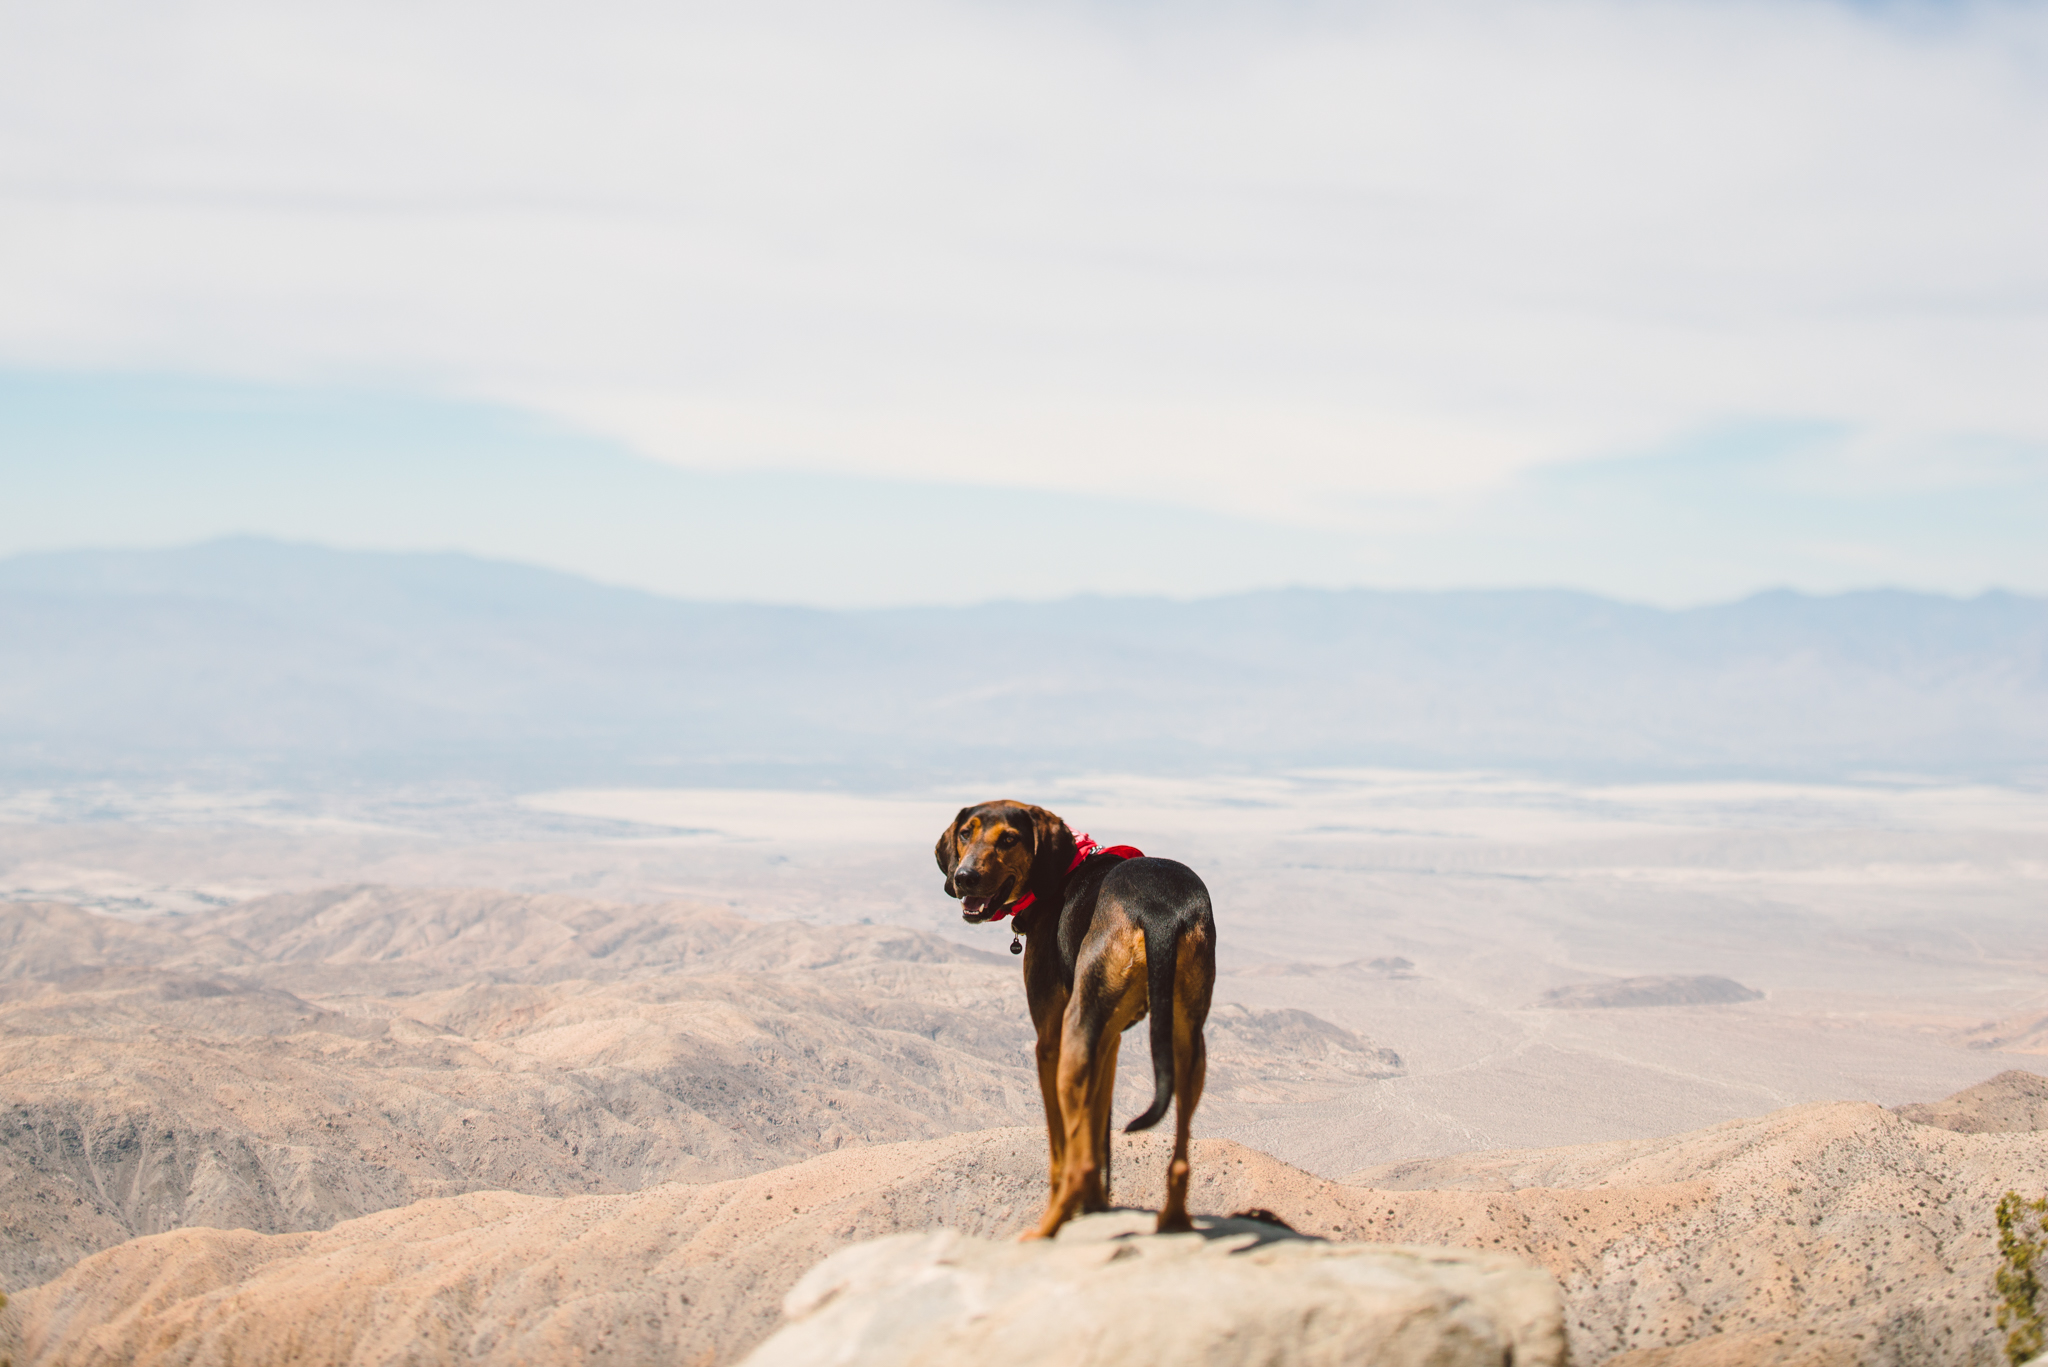 ©The Ryans Photography - Los Angeles Travel - Joshua Tree National Park-005.jpg